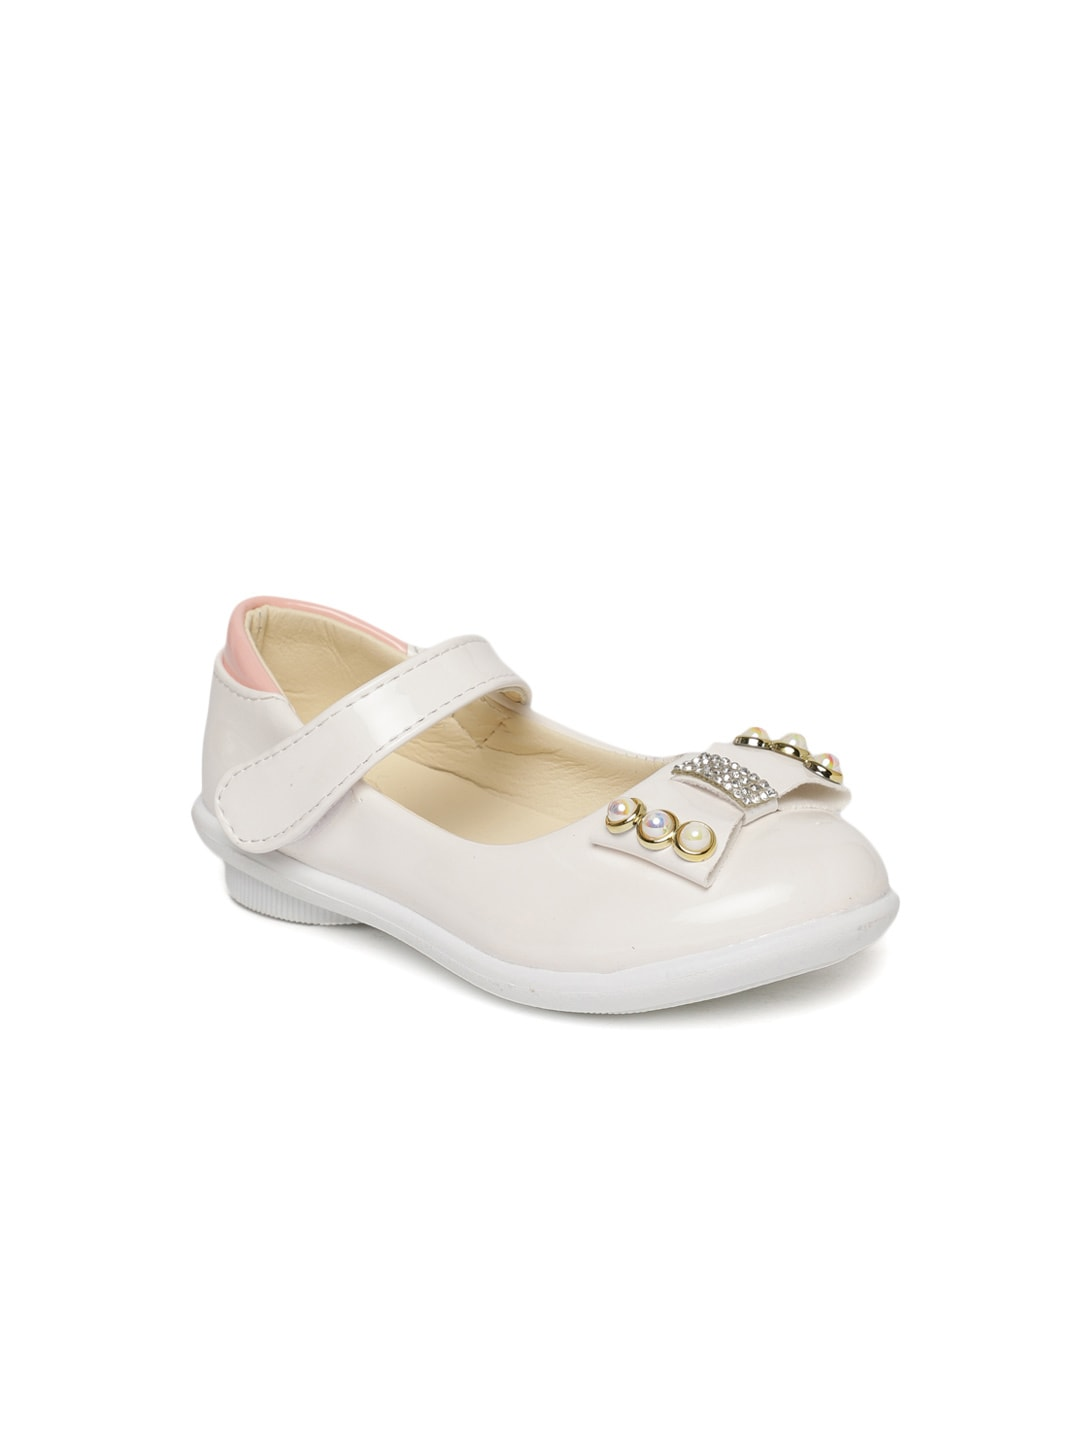 2a36e28e3be8 Girls Shoes - Online Shopping of Shoes for Girls in India